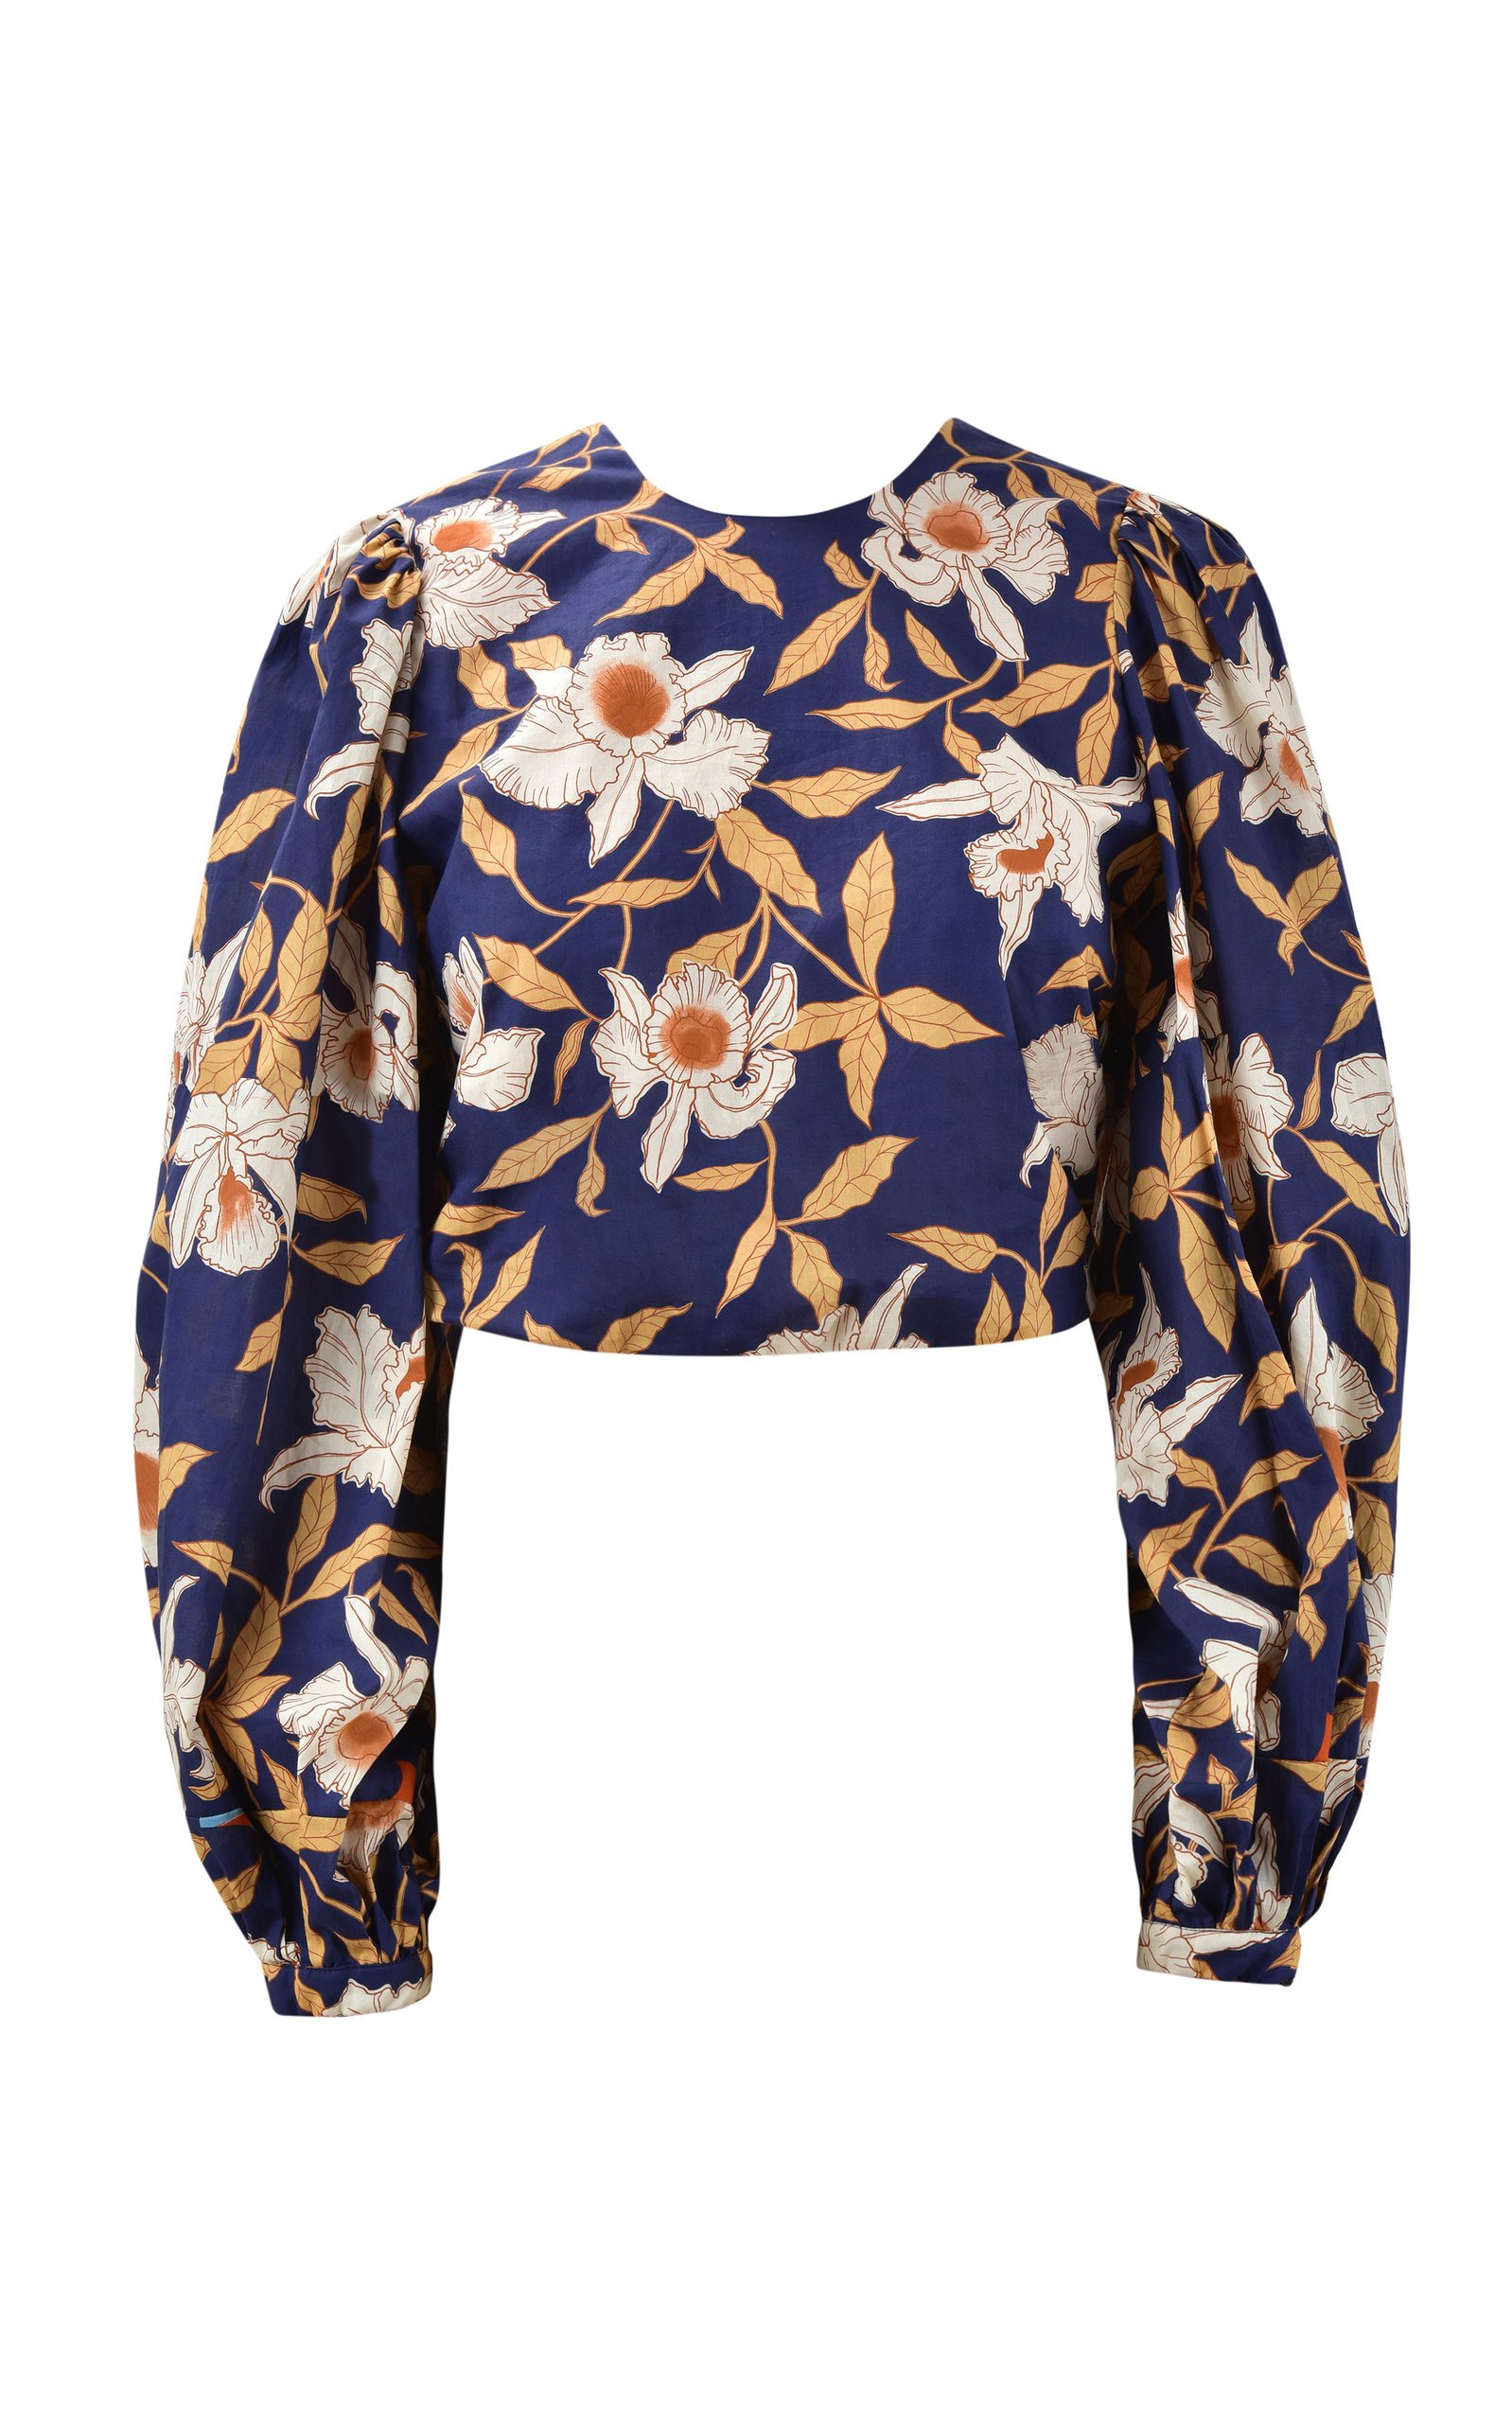 large_johanna-ortiz-print-aire-colonial-puff-sleeve-floral-cotton-crop-top